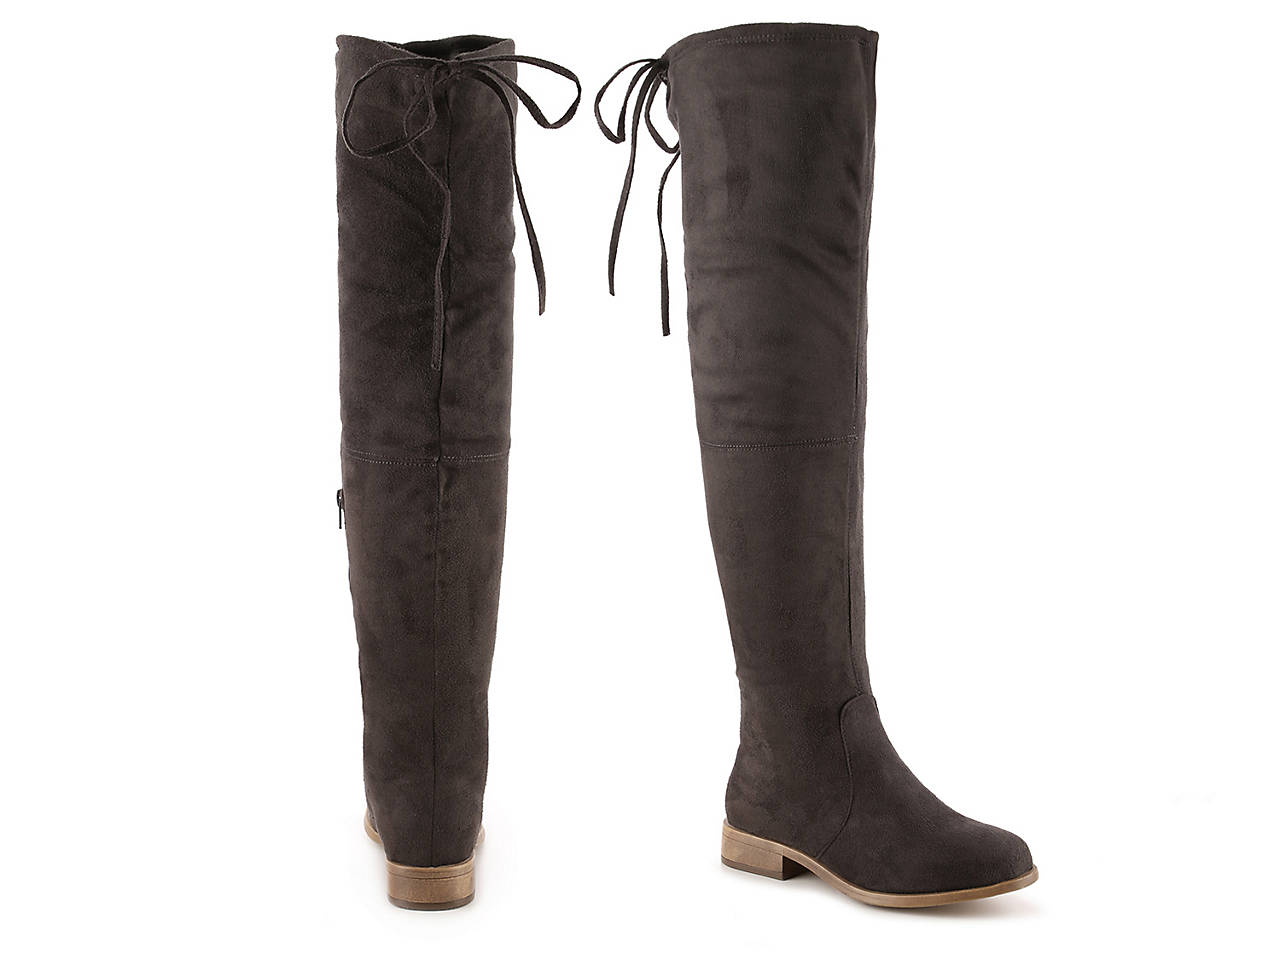 6bca64687cc Journee Collection Mount Wide Calf Over The Knee Boot Women s Shoes ...